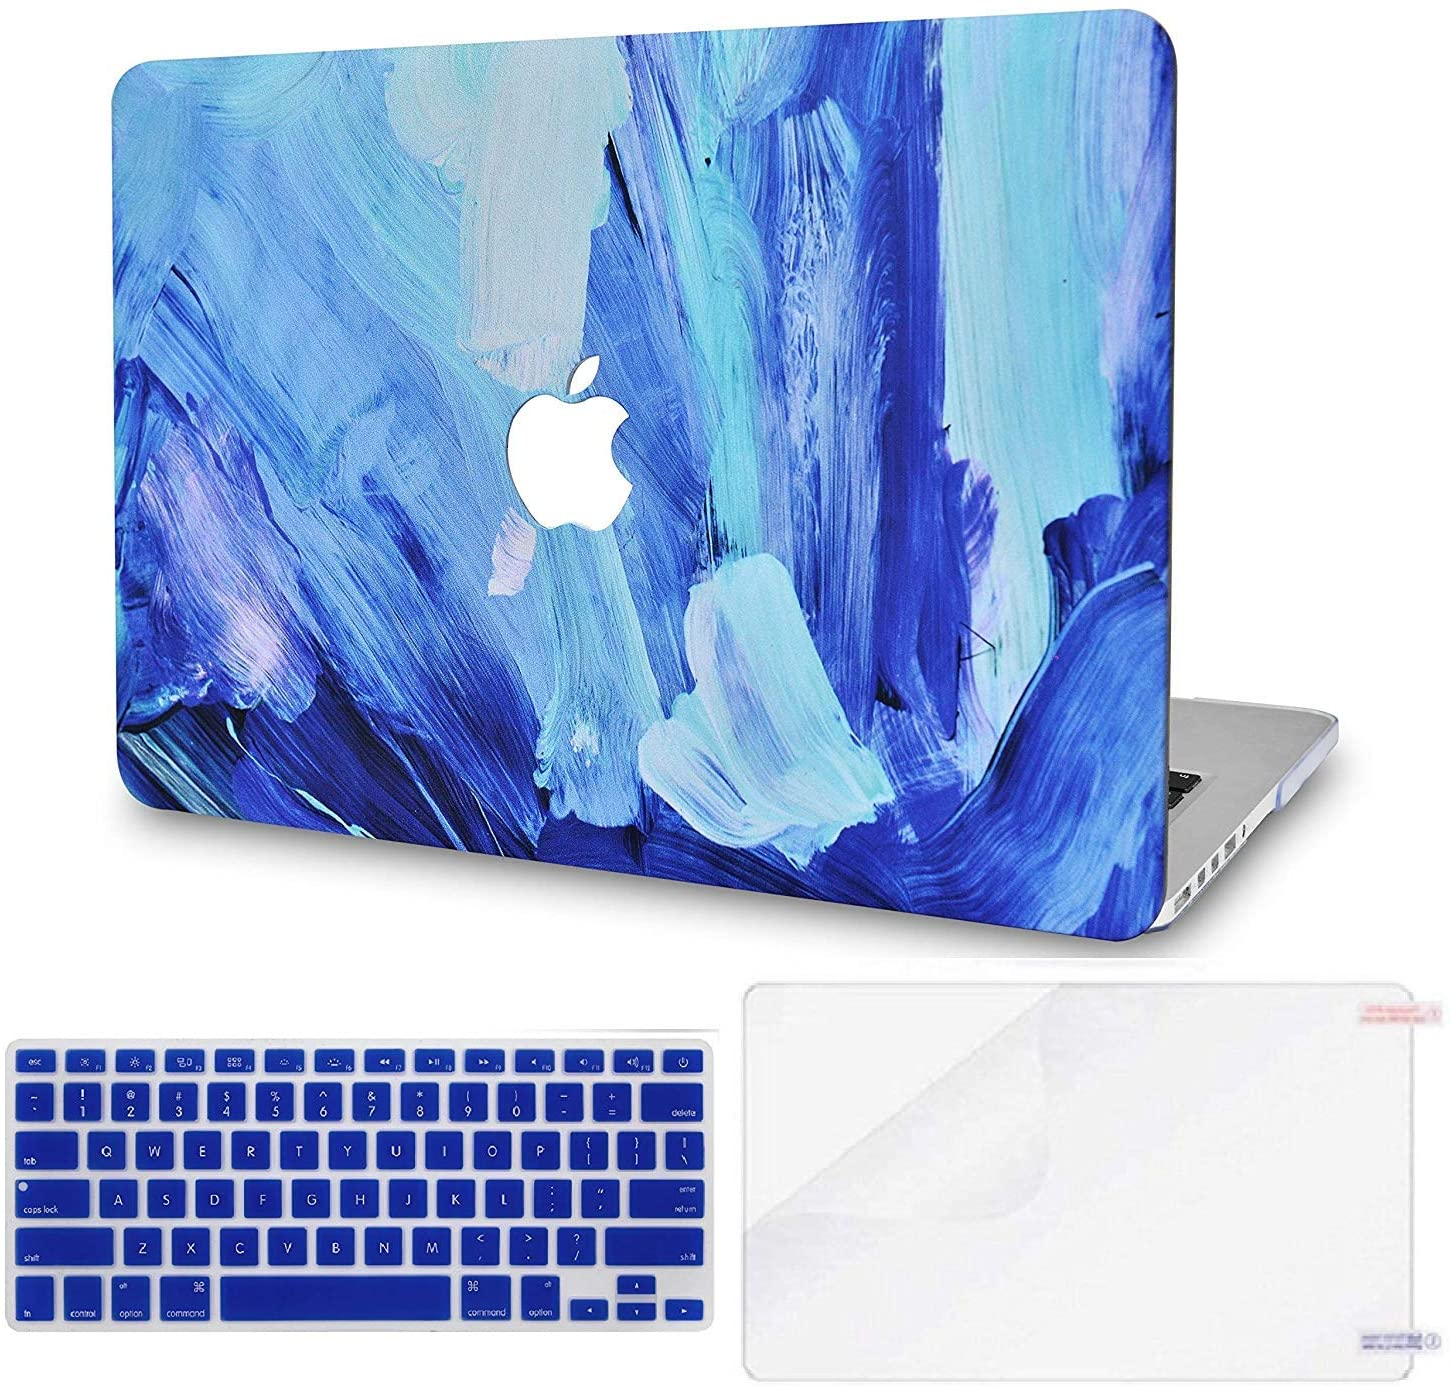 LuvCase 3 in 1 Laptop Case for MacBook Pro 15 Touch Bar (2019/2018/2017/2016) A1990/A1707 Hard Shell Cover, Keyboard Cover & Screen Protector (Oil Paint 5)